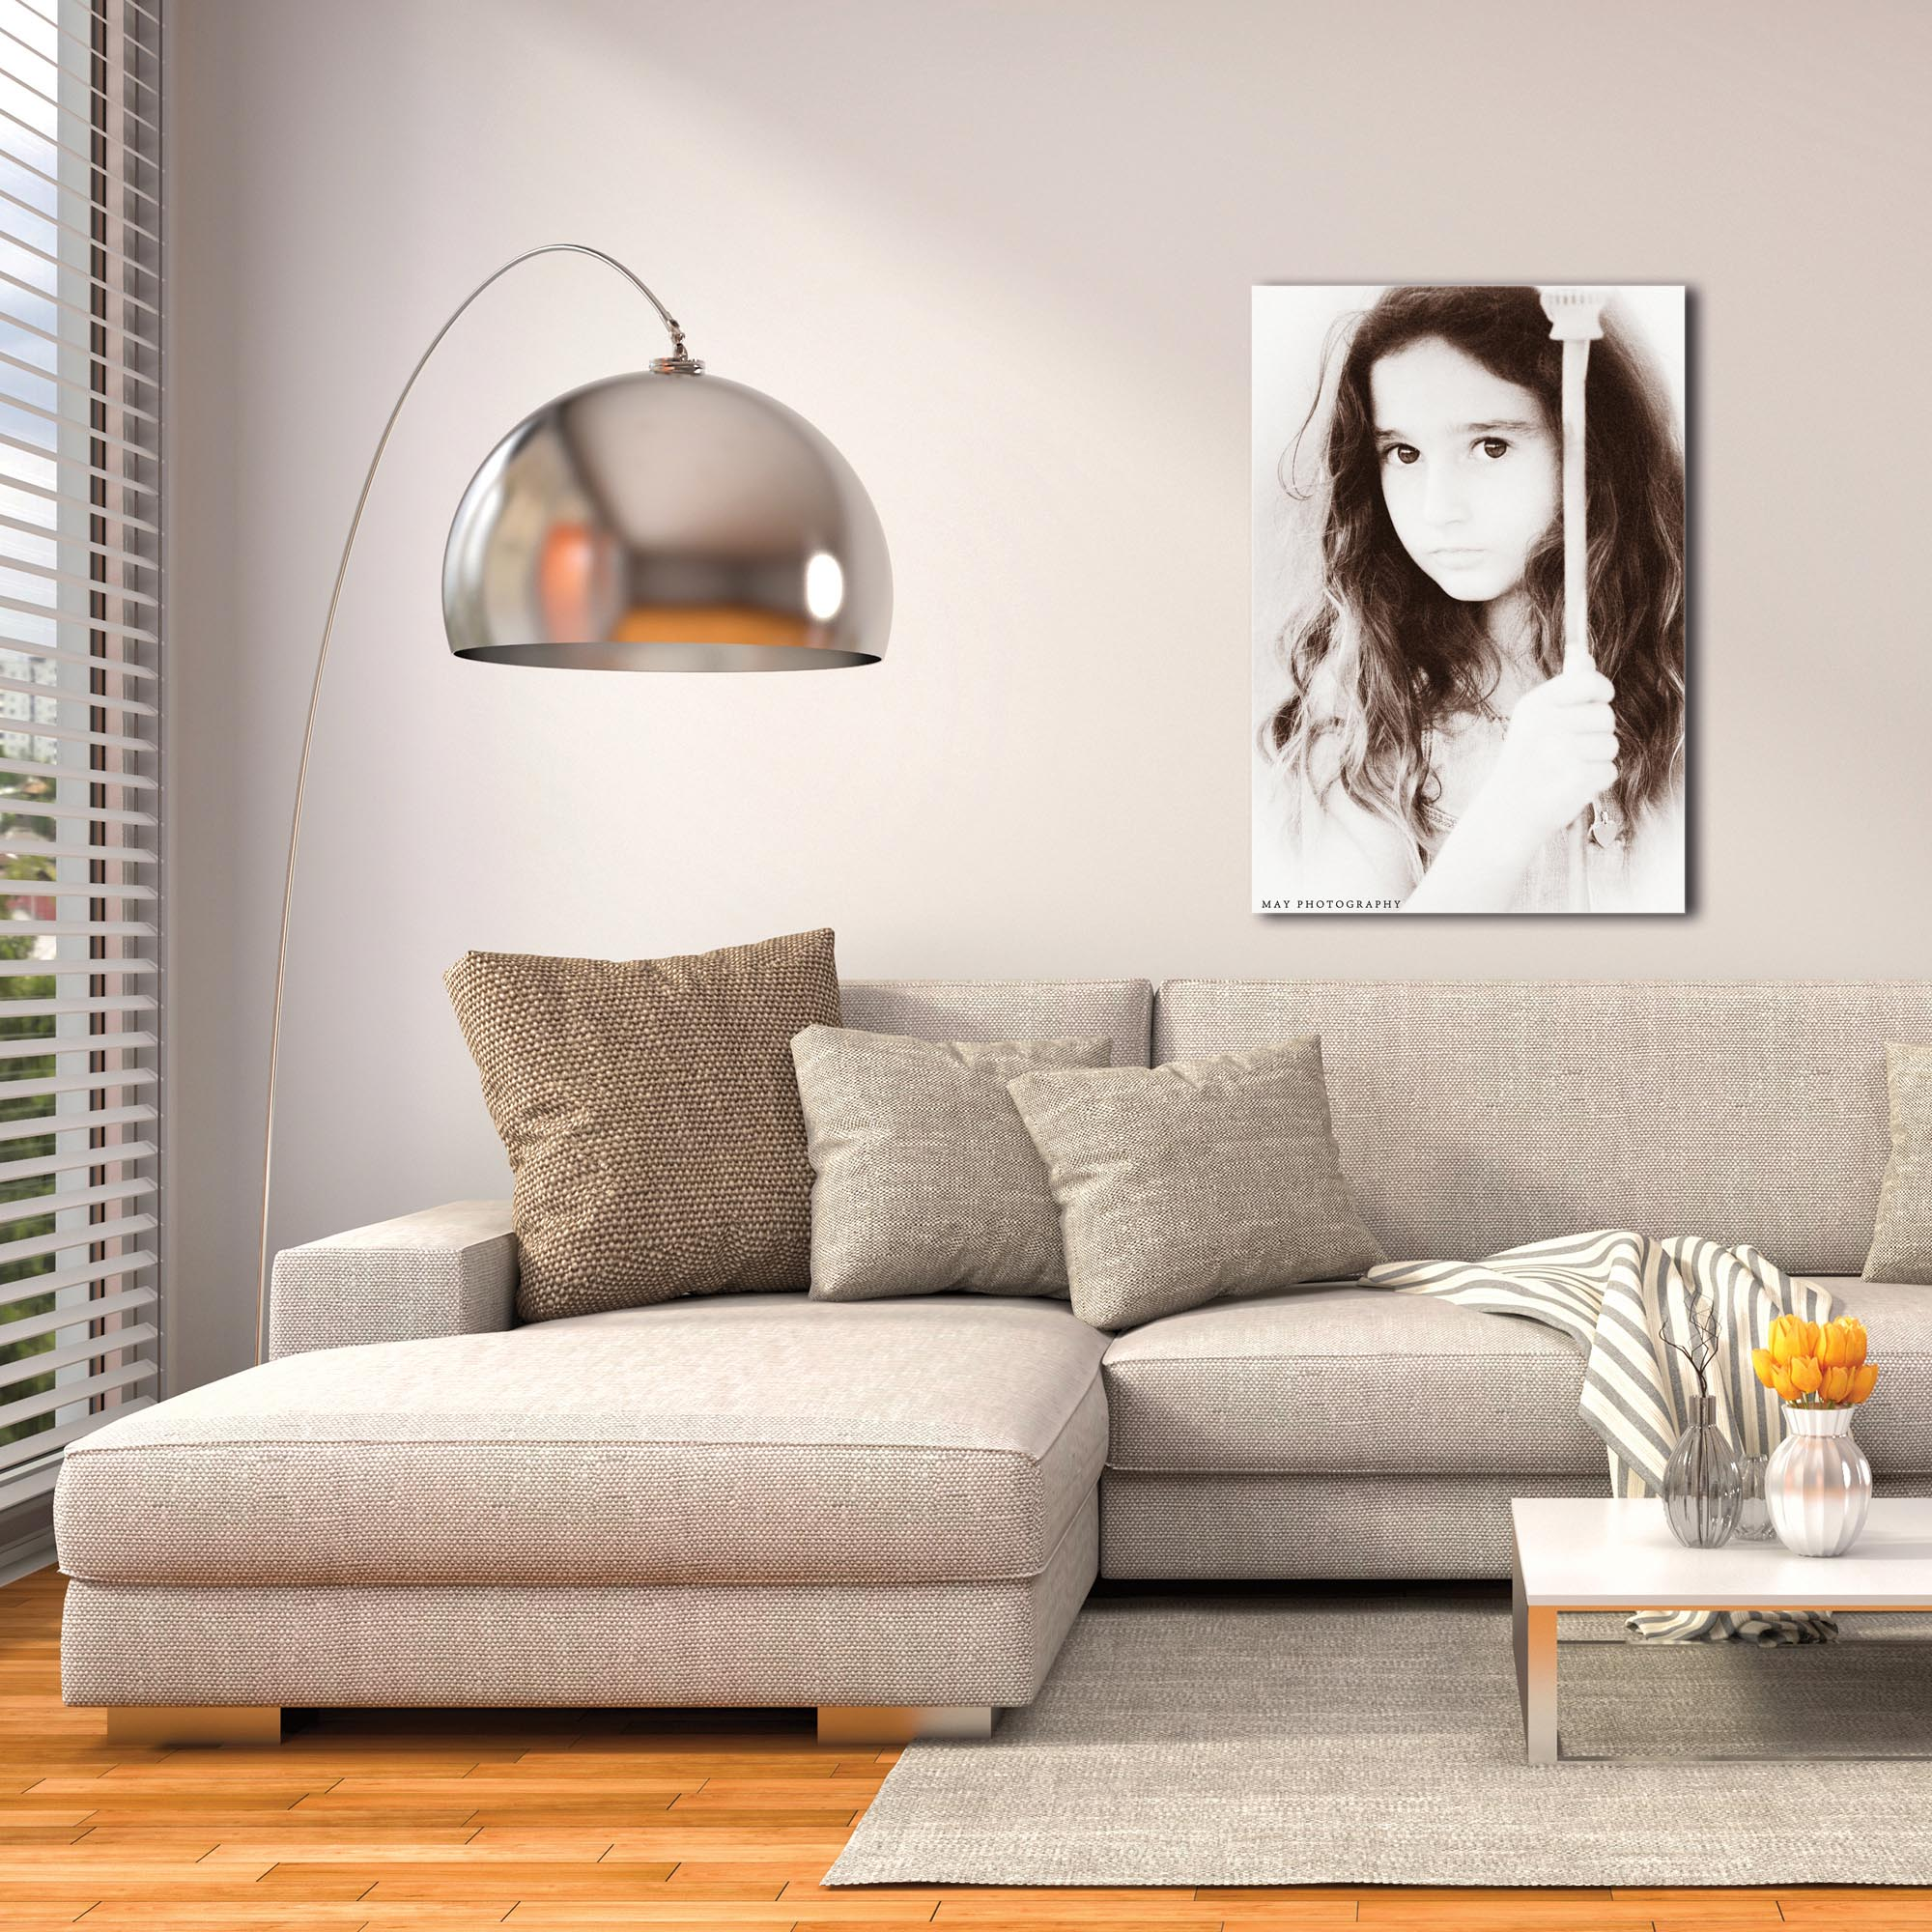 Casual Wall Art 'Little Lady' - People Decor on Metal or Plexiglass - Image 3